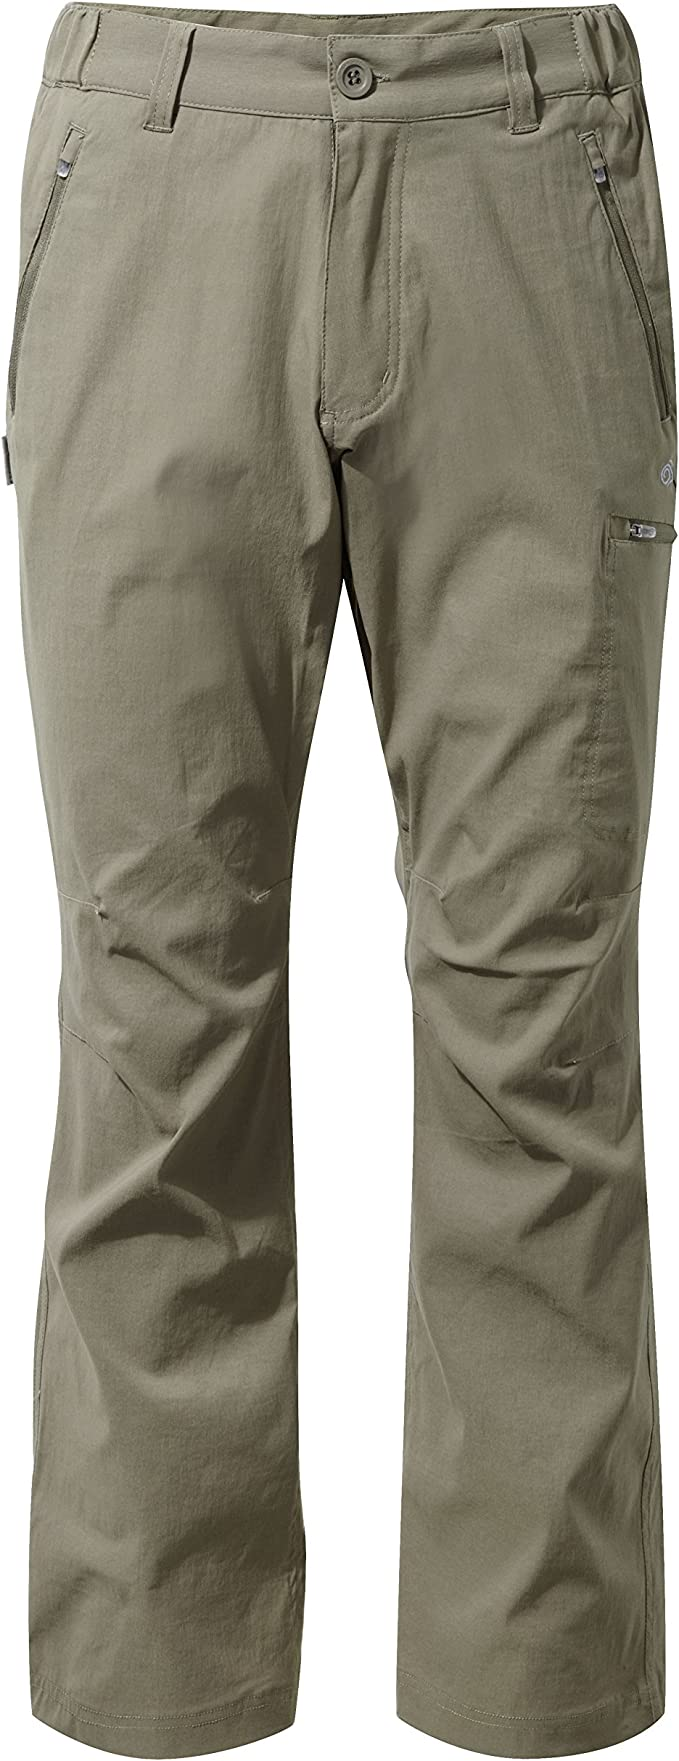 Craghoppers Mens NAT Geo Kiwi Pro Regular Trousers